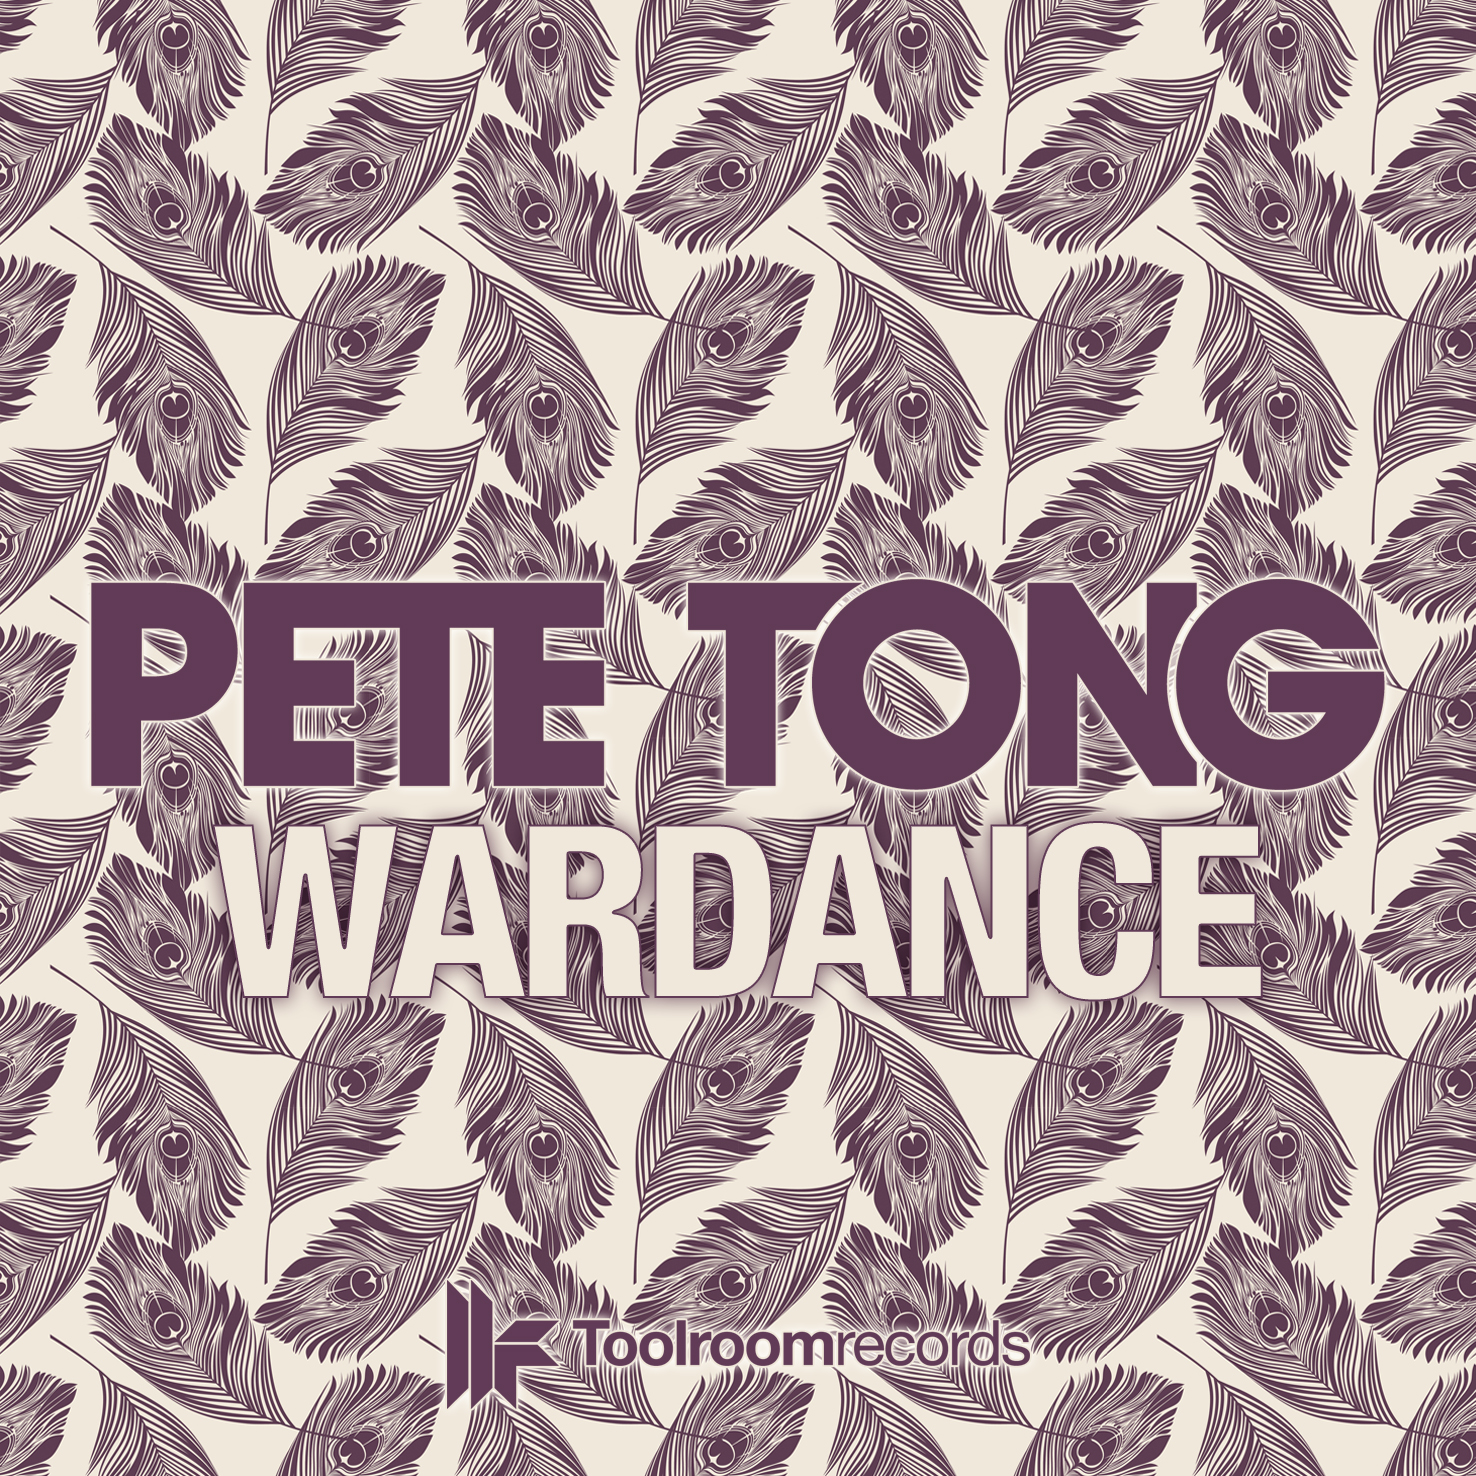 Preview: Pete Tong - Wardance (incl. Matthias Tanzmann Remix) [Toolroom Records]